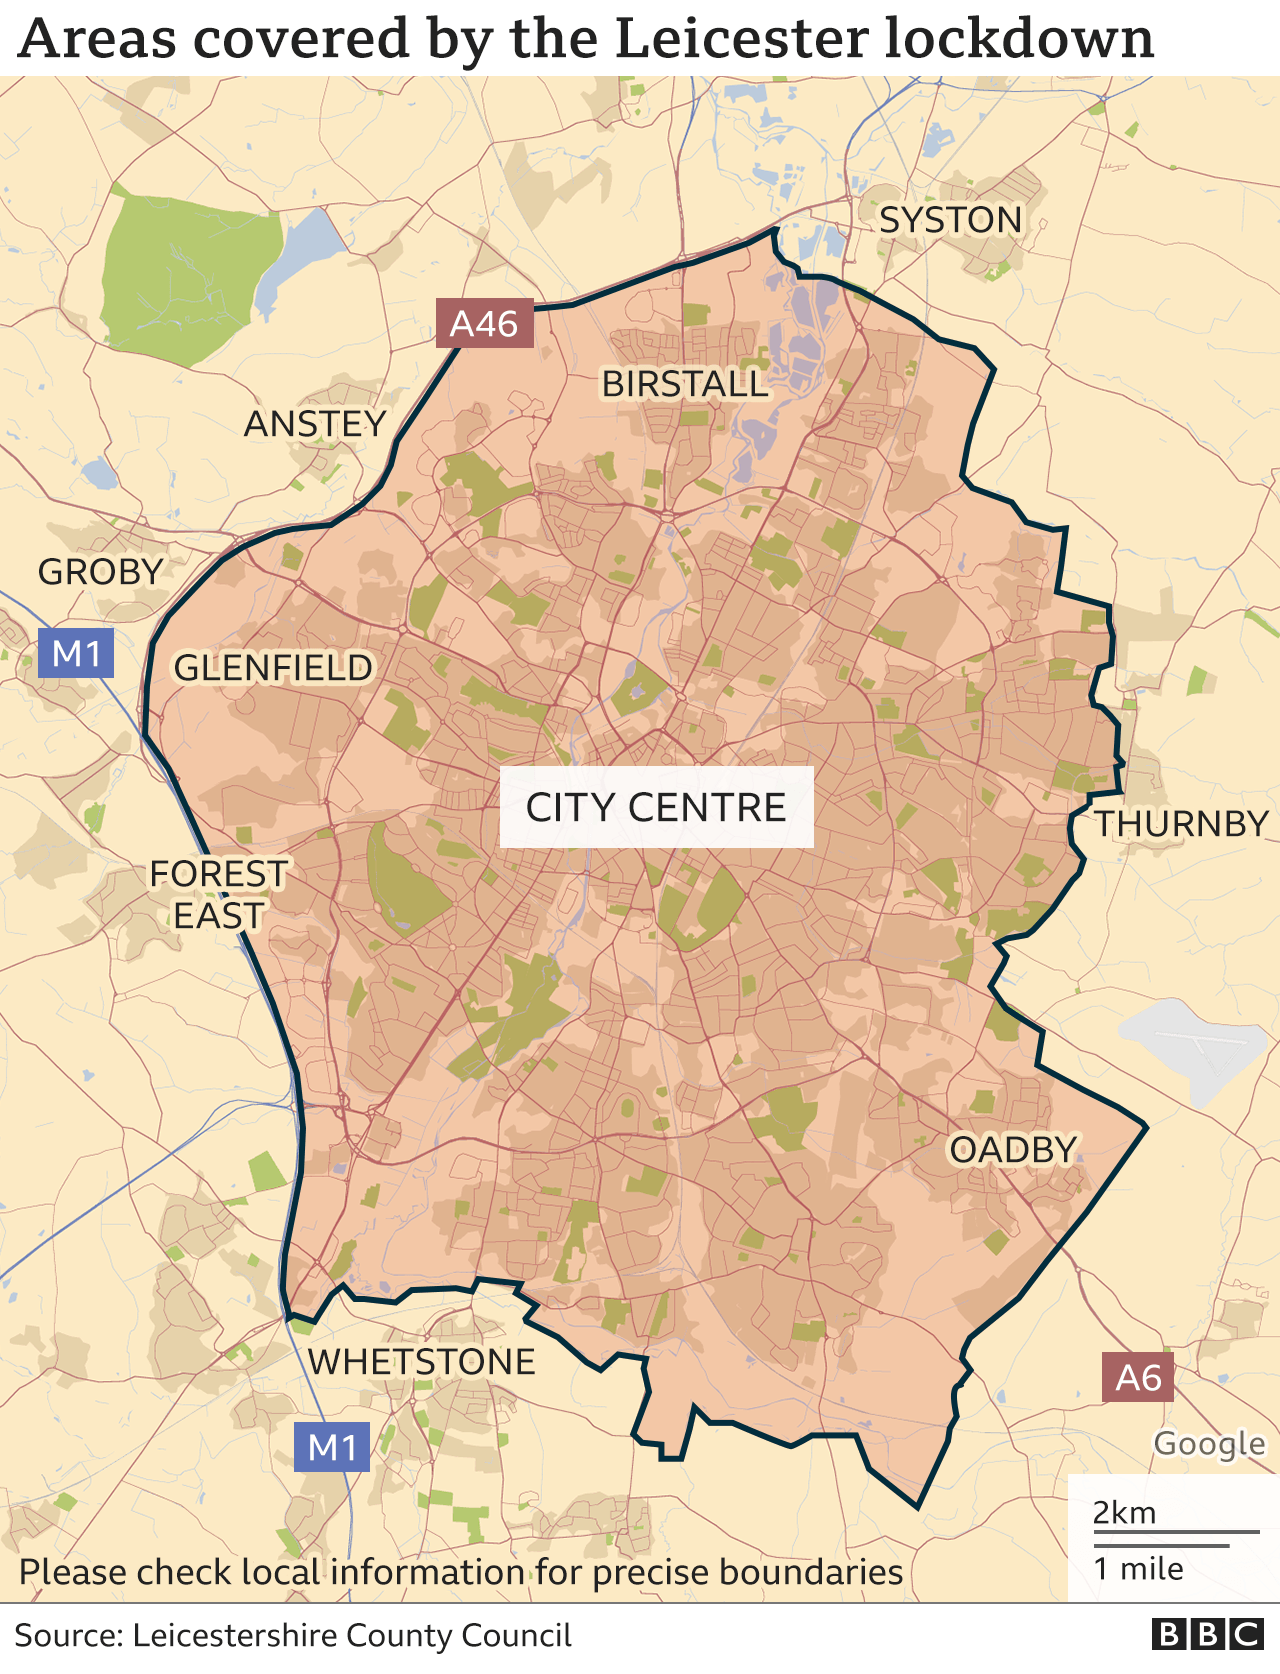 Map showing the area covered by the Leicester lockdown.